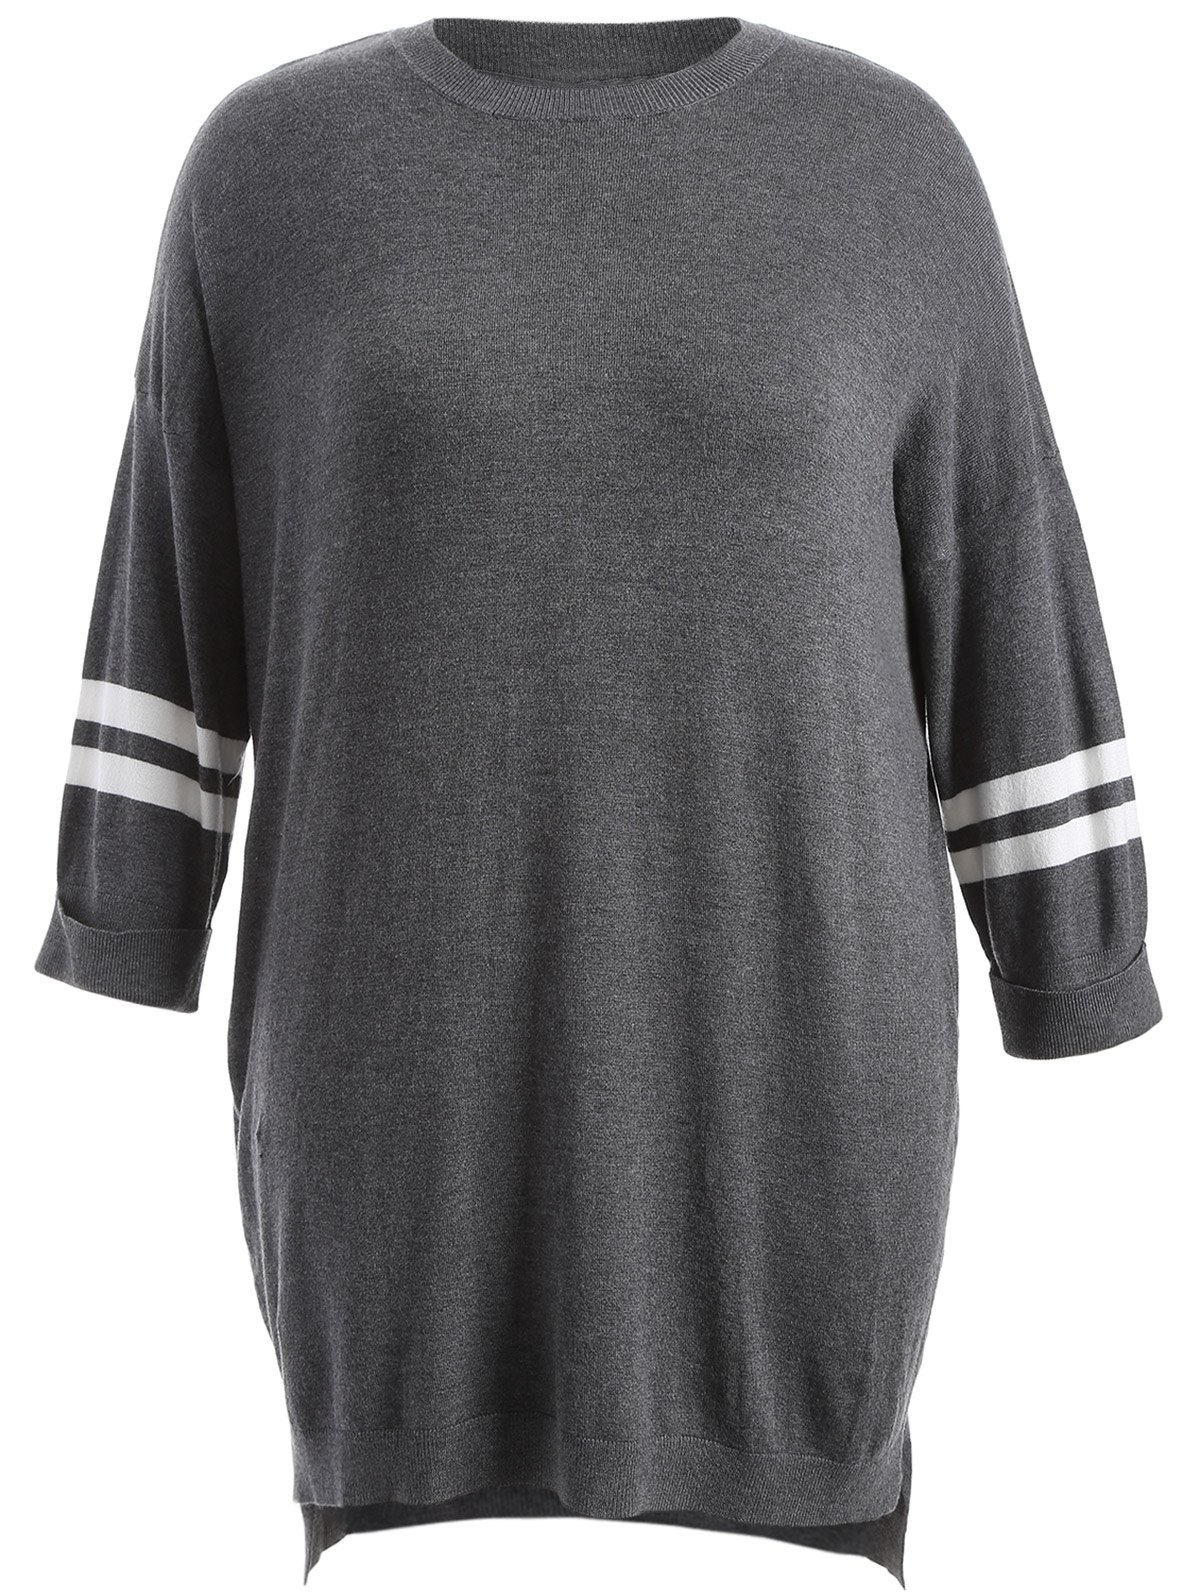 High-Low Striped Sweater Dress - DEEP GRAY ONE SIZE